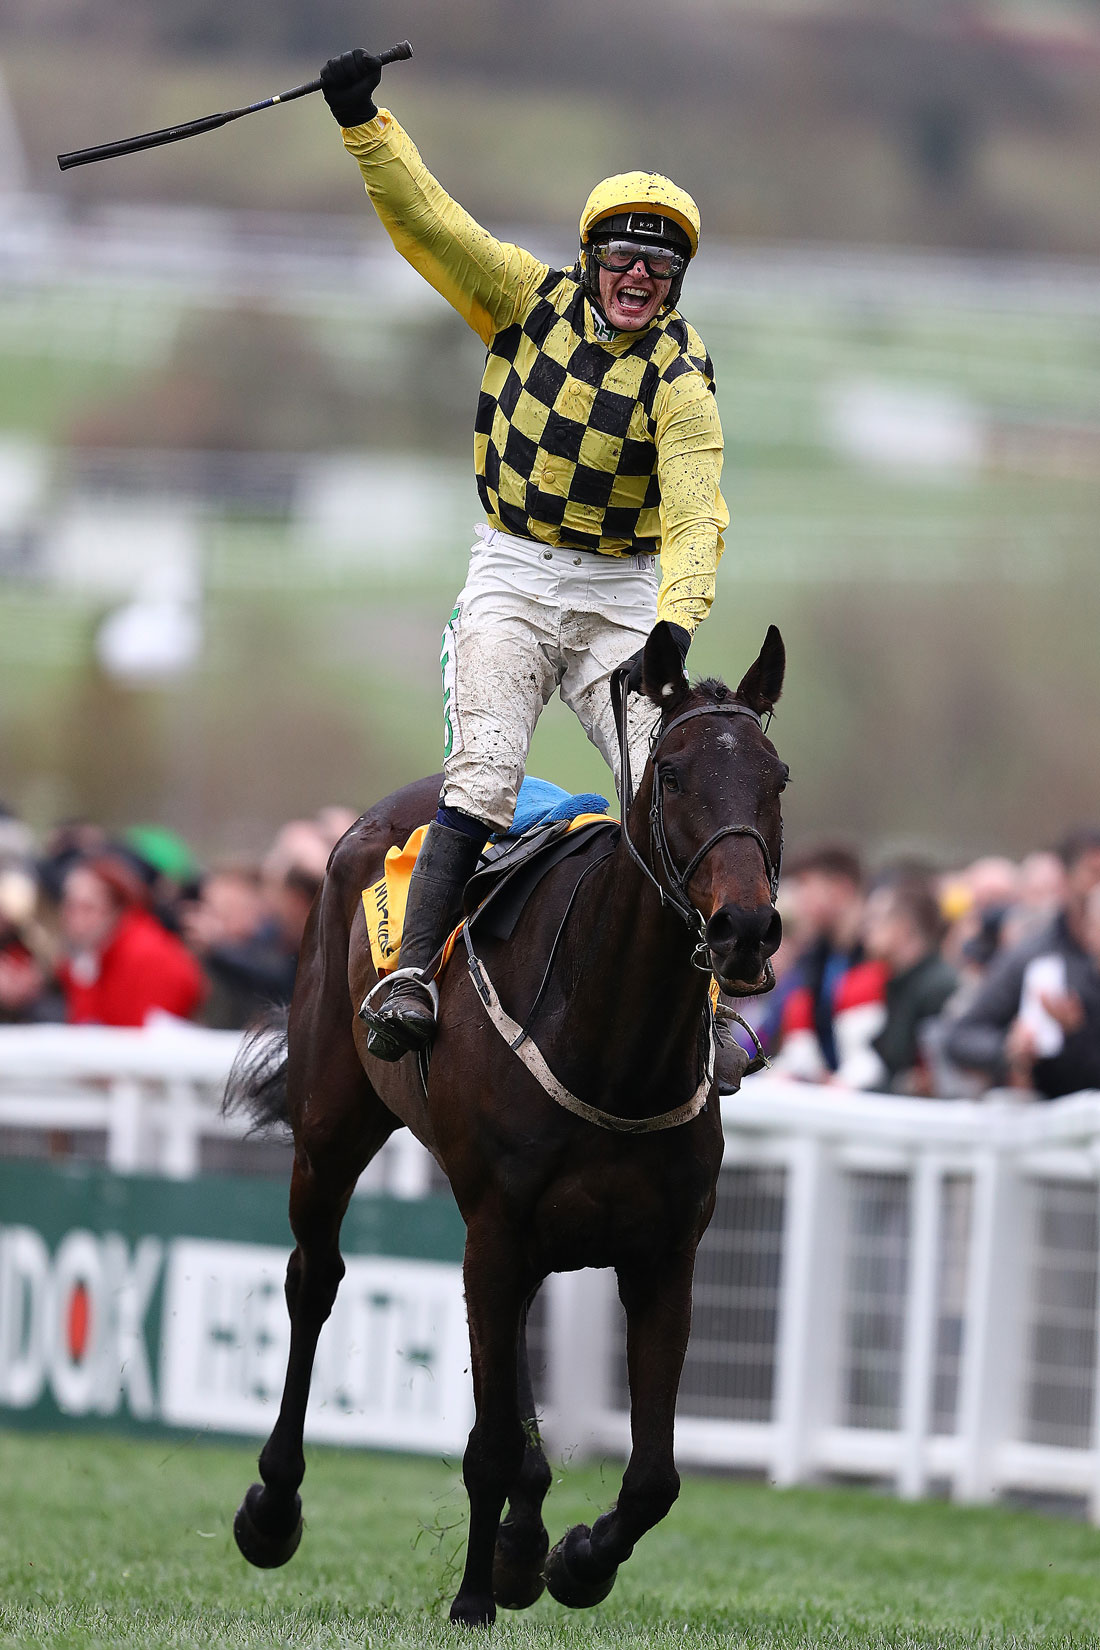 Jockey Paul Townend celebrates victory in the Cheltenham Gold Cup on Al Boum Photo, March 15th